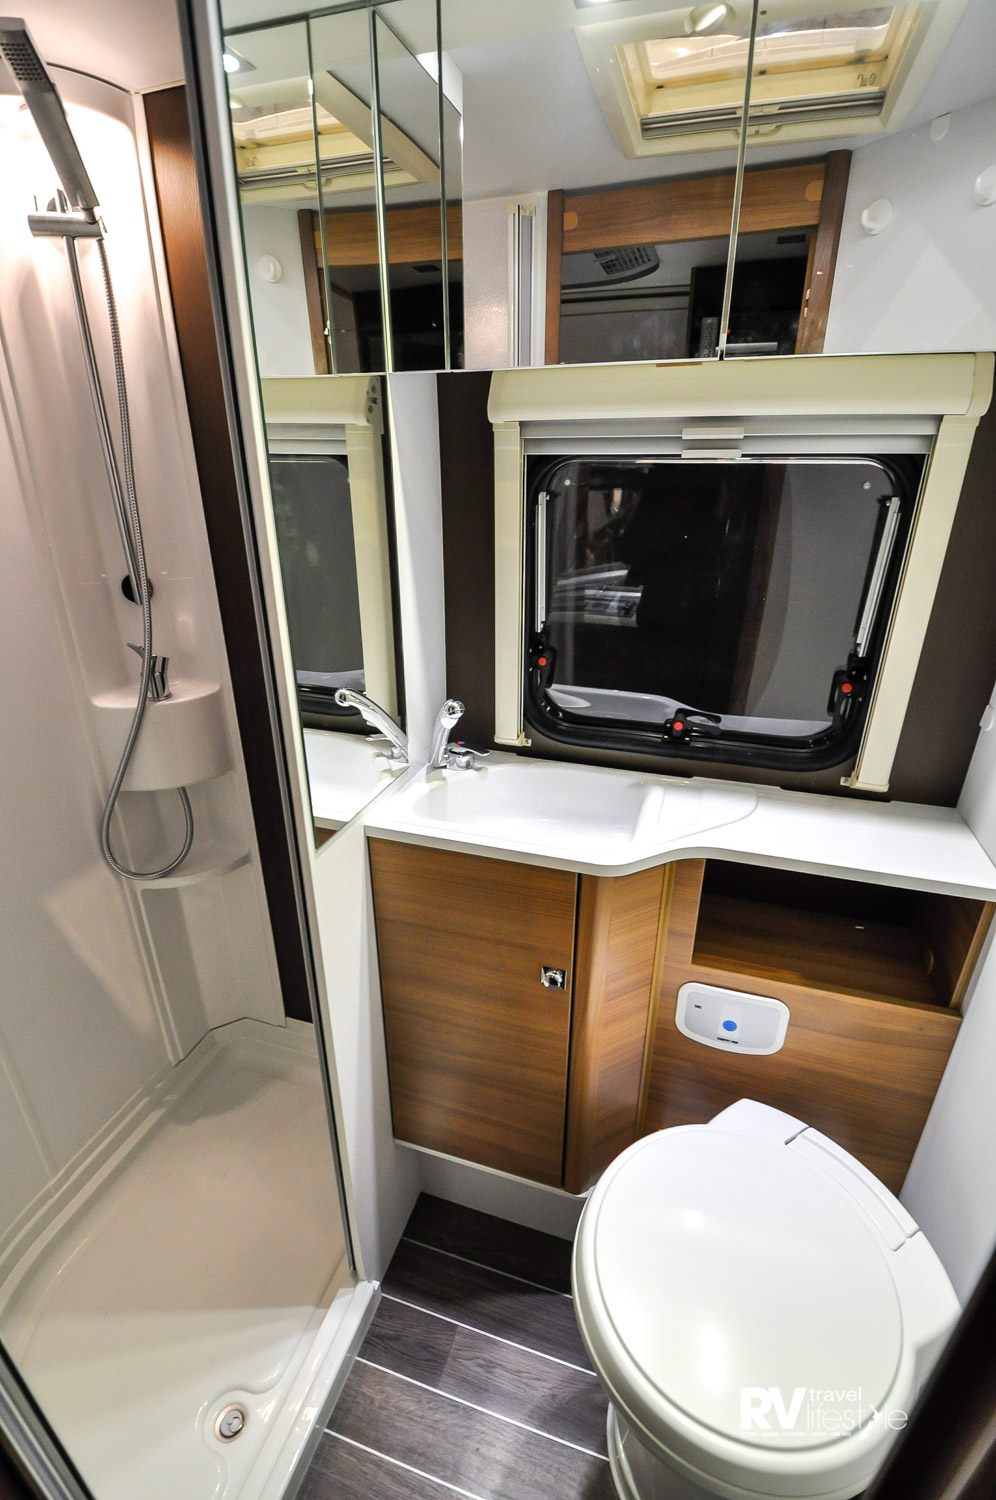 XL 660 SCS Motorhome – Good looking bathroom with full-sized separate shower, pedestal-cassette electric flush toilet, cupboards and storage areas, as well as a window and vent for ventilation